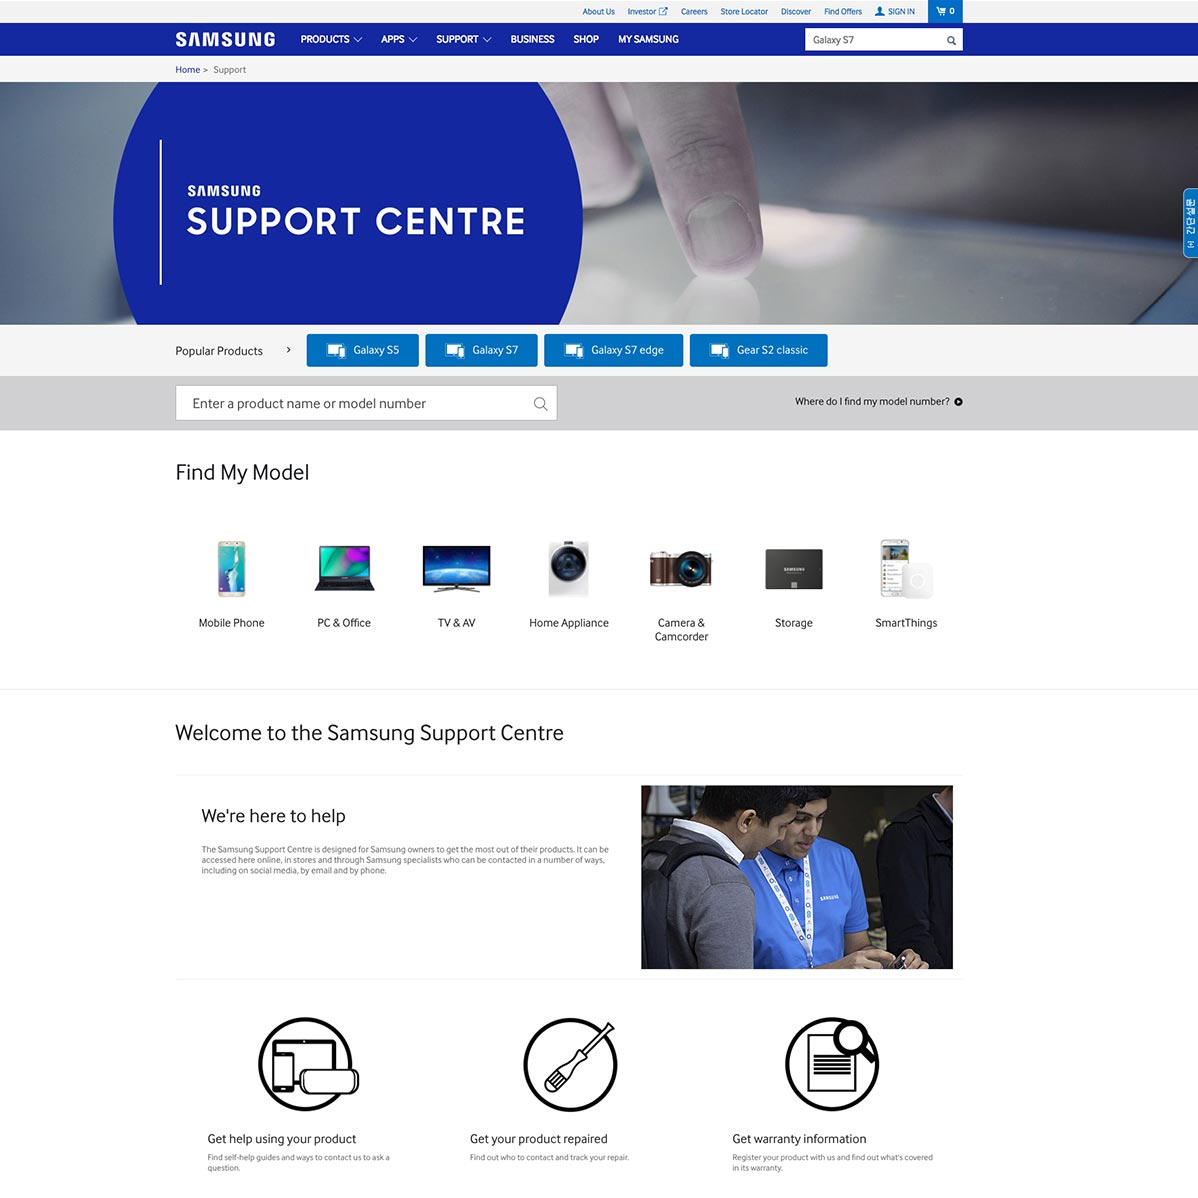 Samsung Support Centre